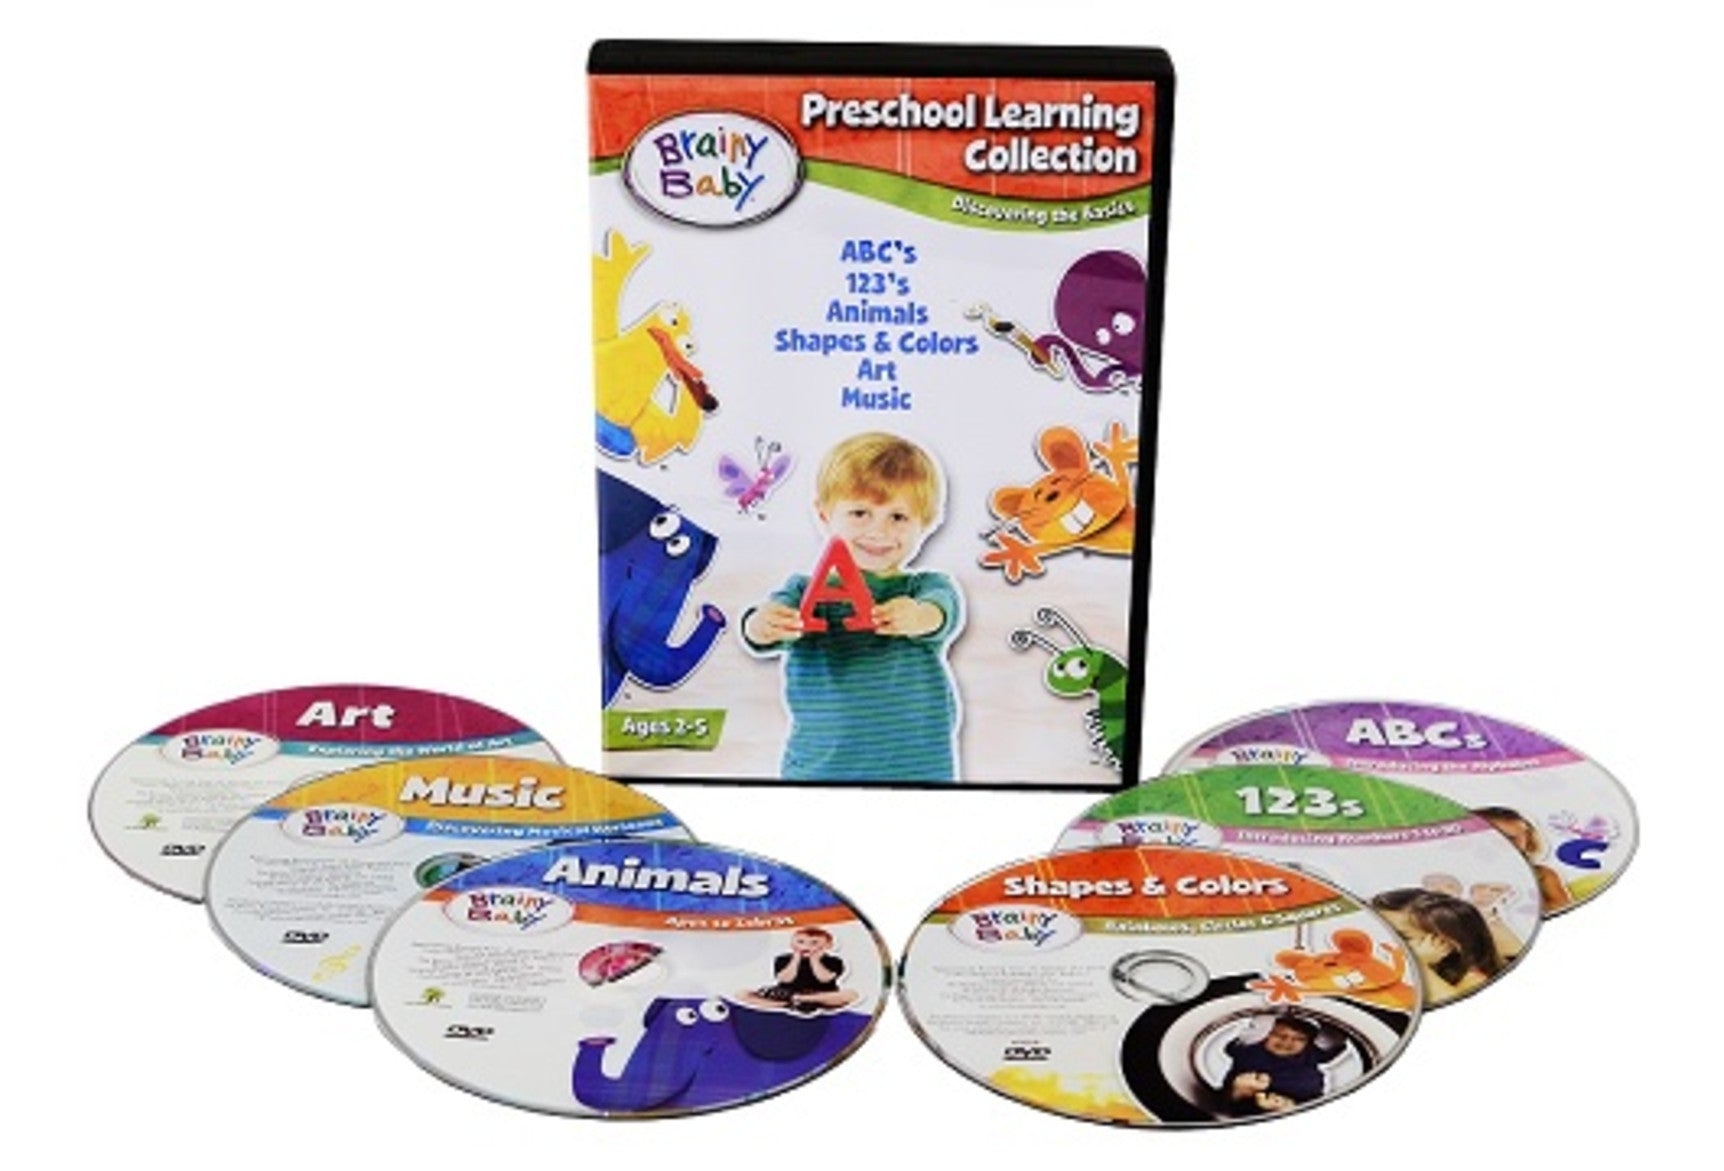 Brainy Baby Preschool Learning DVDs Set of 6 Academics and Enrichment Subjects